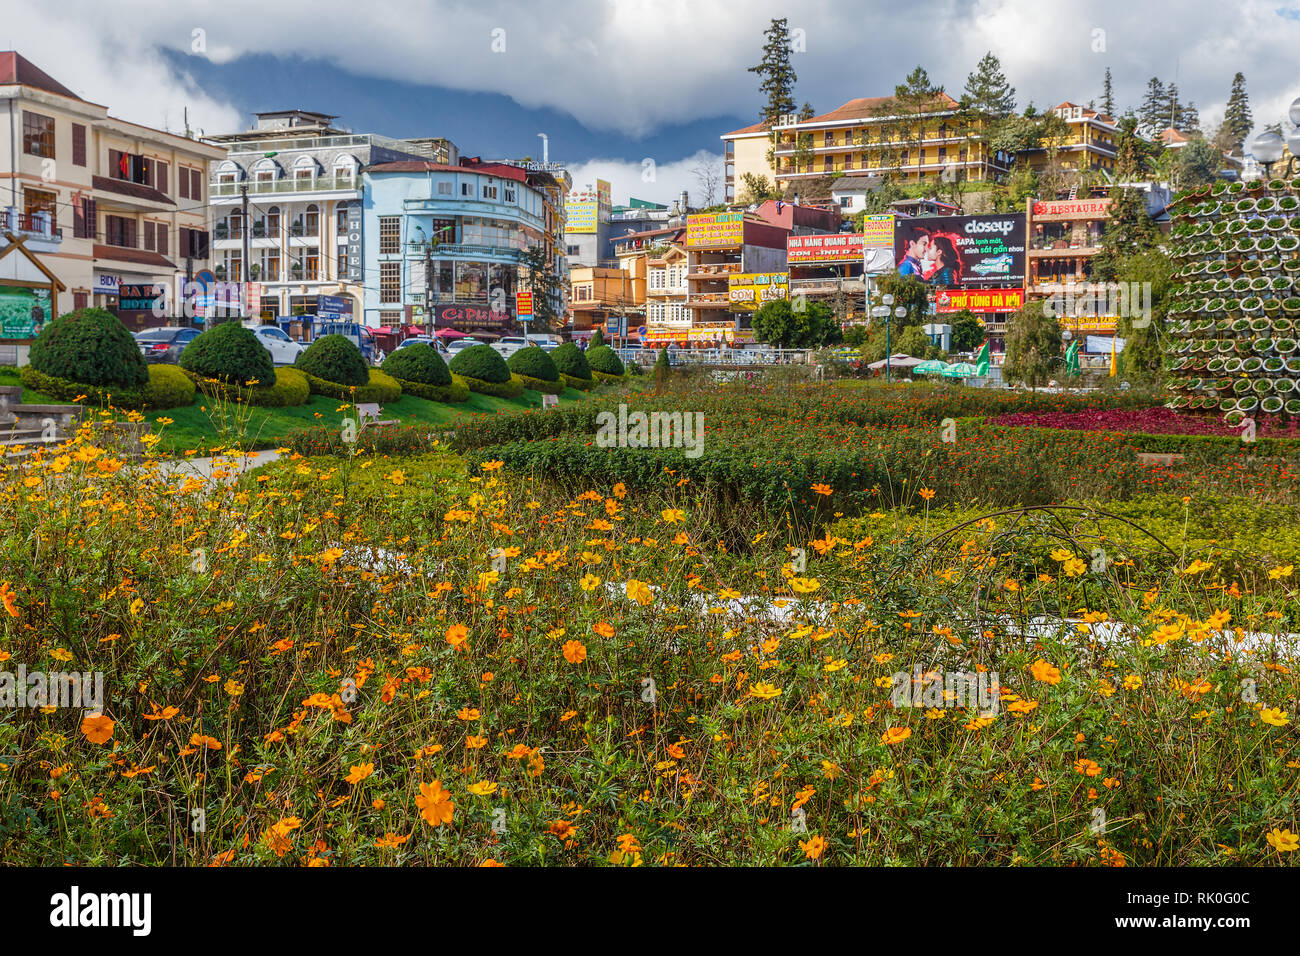 Sapa, Vietnam - November 20, 2018: View of the street of the city of Sapa from the park near the lake. Flower bed in the foreground. - Stock Image